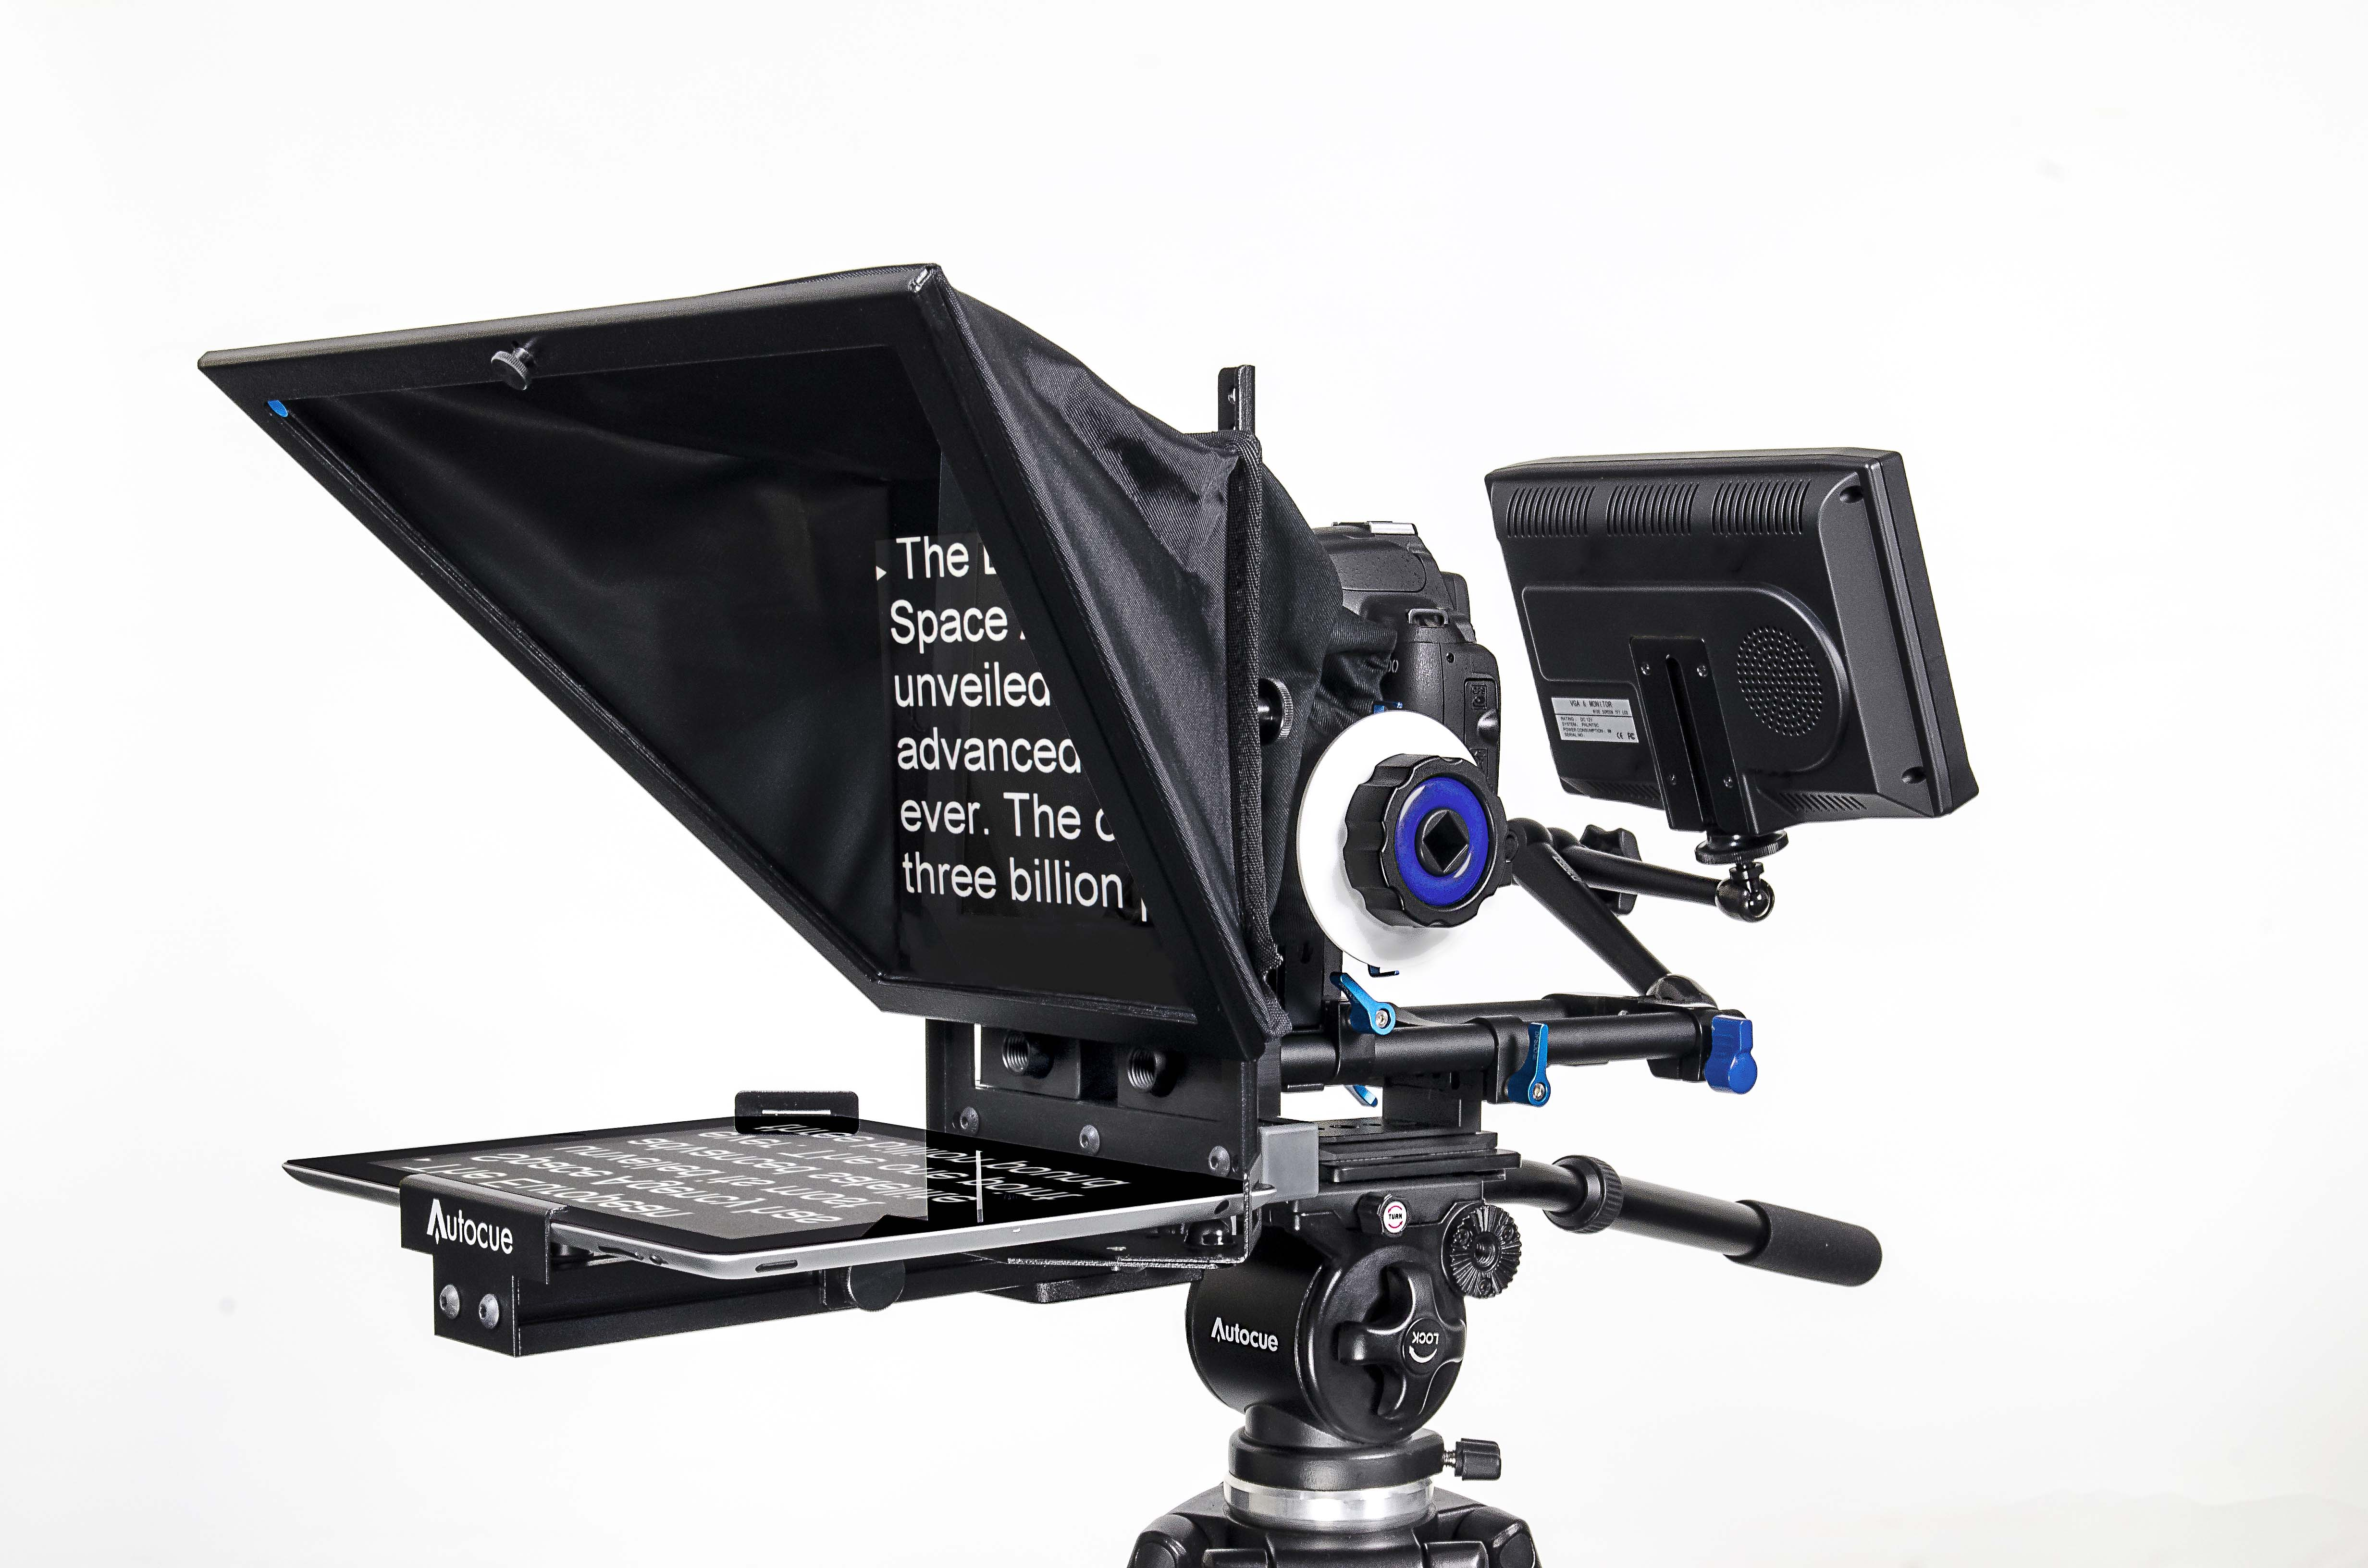 The proper use of a Teleprompter © autocue